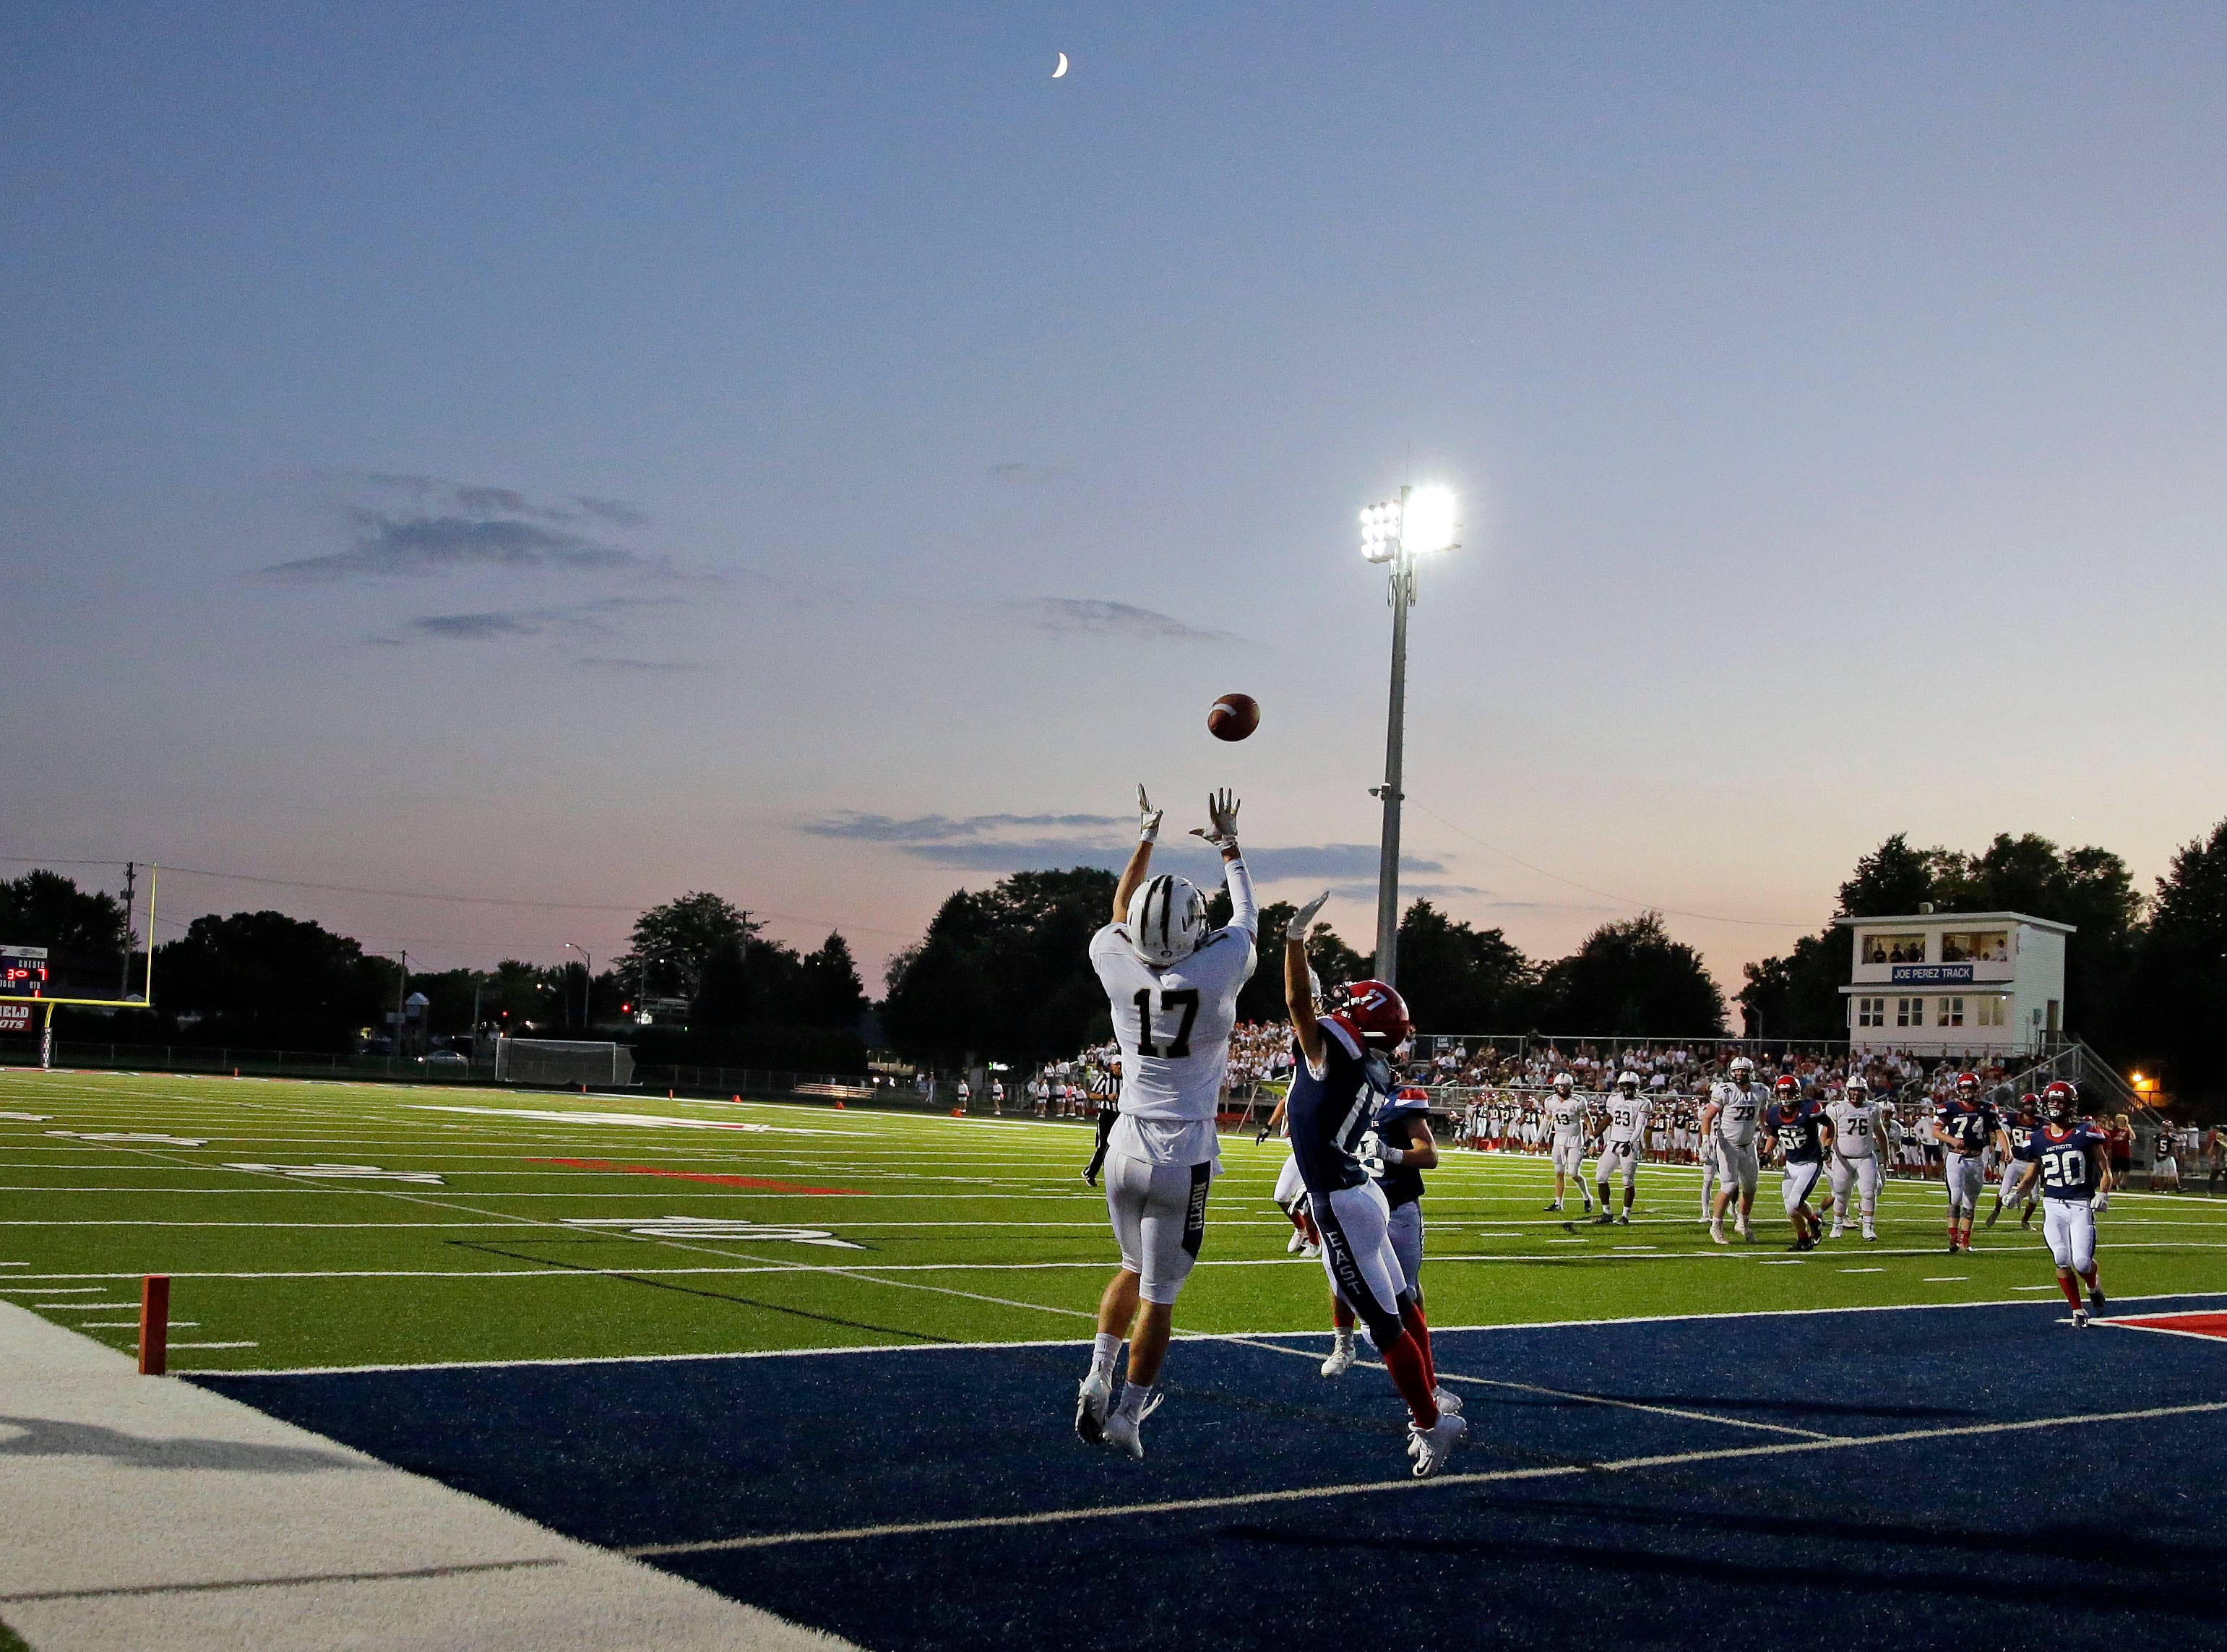 Kyle Hammen of Appleton North goes up for a touchdown catch while being defended by Ricky Thao of Appleton East in a Valley Football Association game Friday, September 14, 2018, at Appleton East High School in Appleton, Wis.Ron Page/USA TODAY NETWORK-Wisconsin